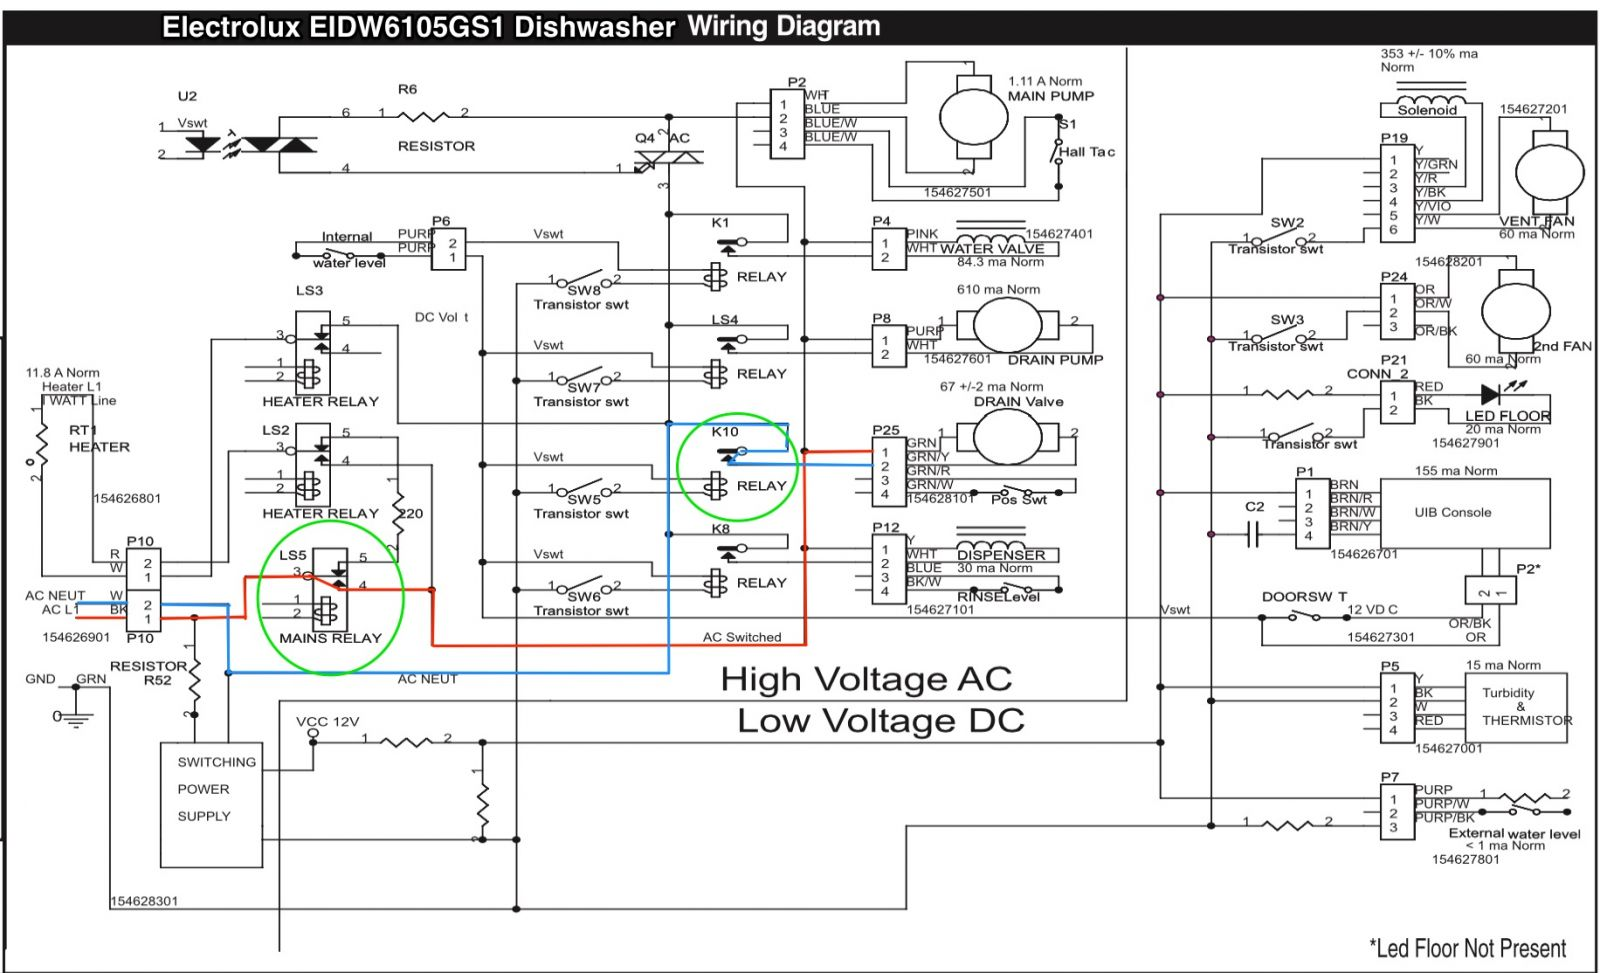 hight resolution of dishwasher wiring diagram wiring diagram page wiring diagram dishwasher dishwasher wiring diagram wiring diagram database whirlpool